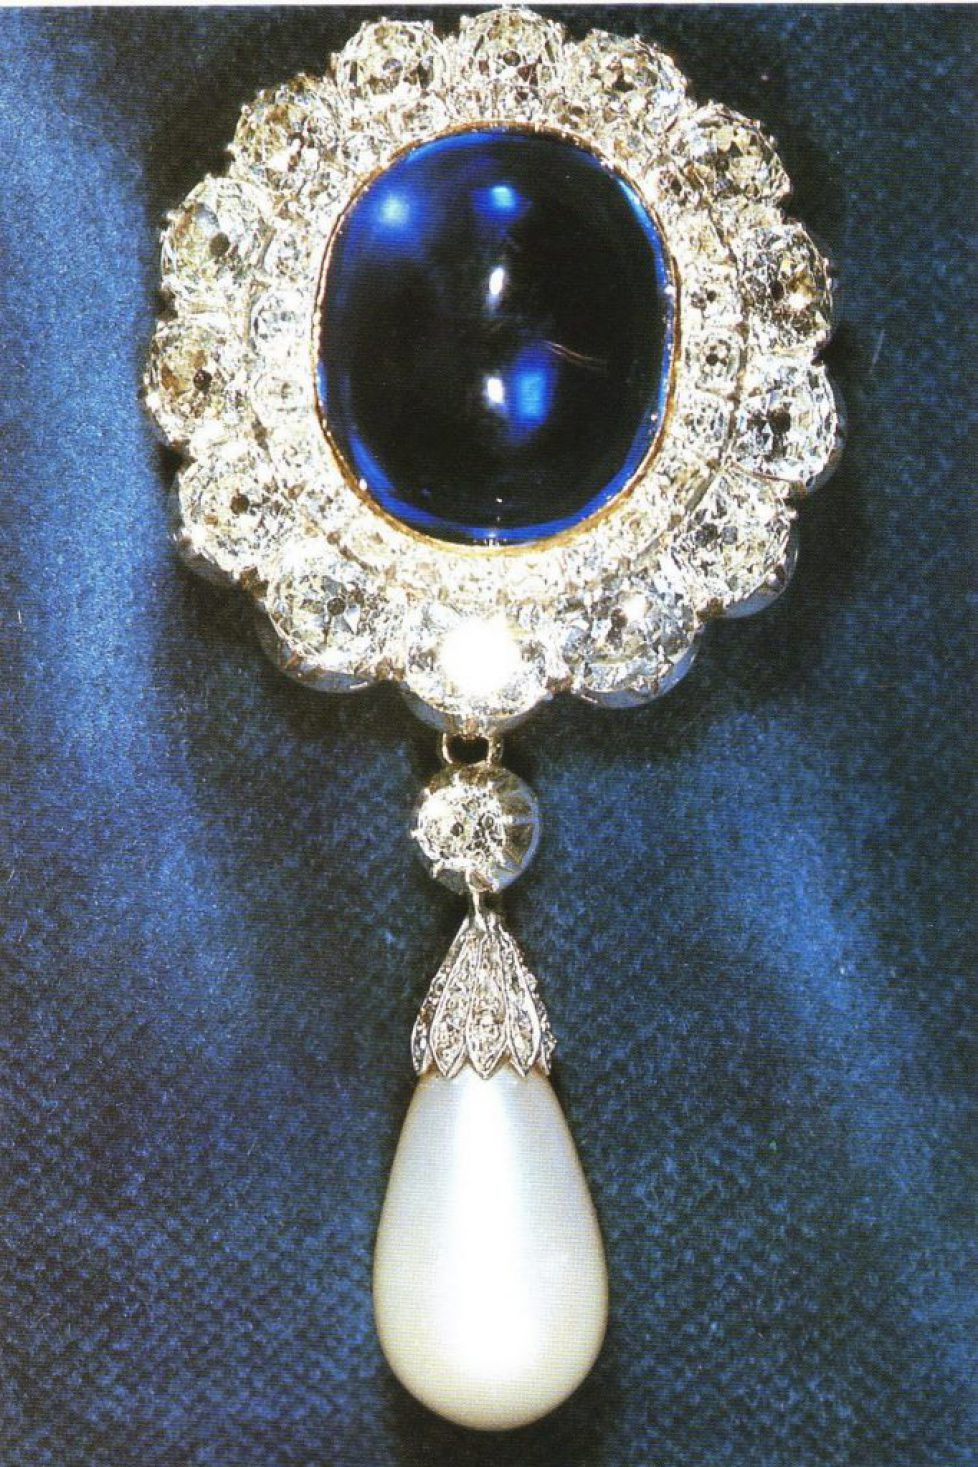 gracie jewellery the empress marie feodorovna of russia's brooch